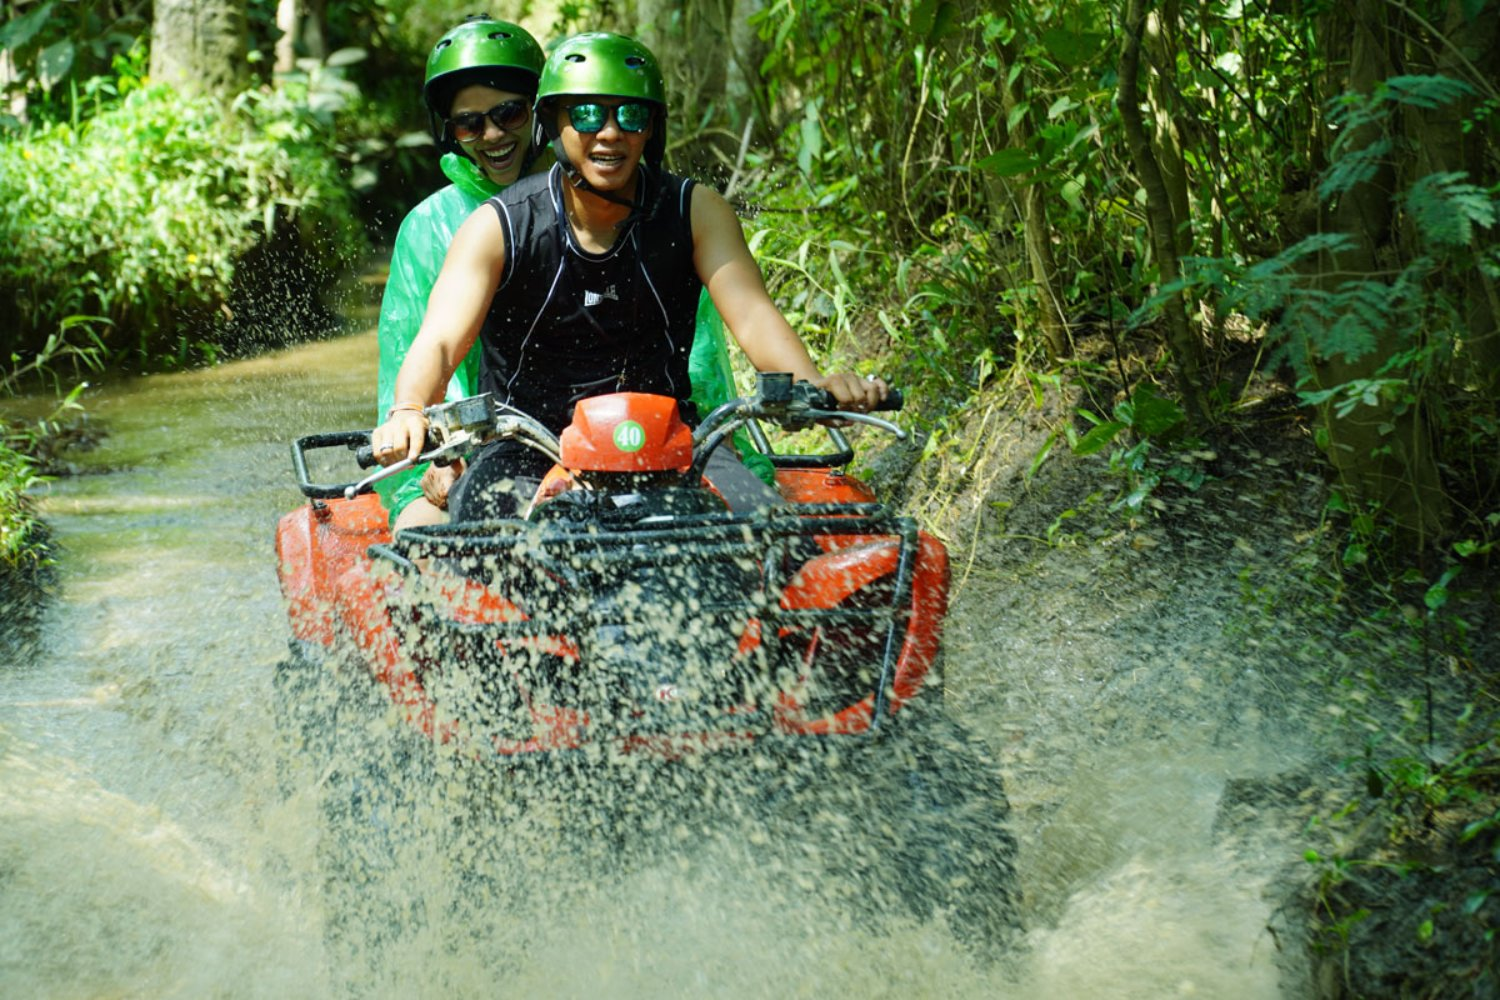 Join Quad Bike Riding Adventure in Bali – Only At USD $90